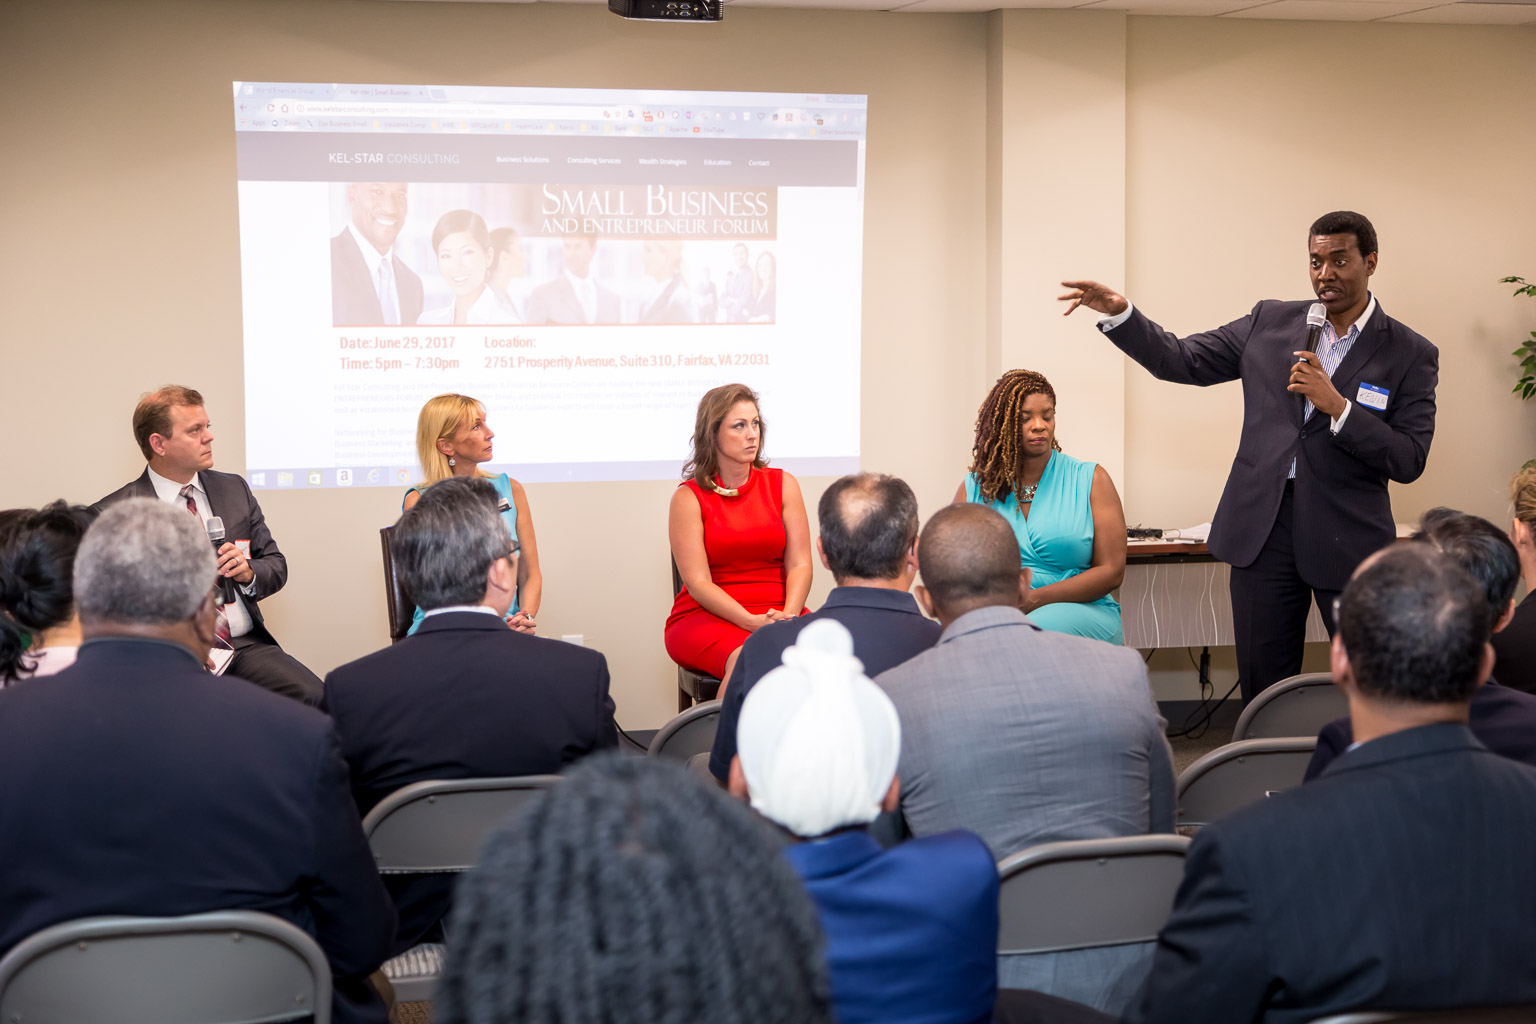 Kelvin moderated and the four panelists shared business advice from the perspective of each of their areas of expertise.